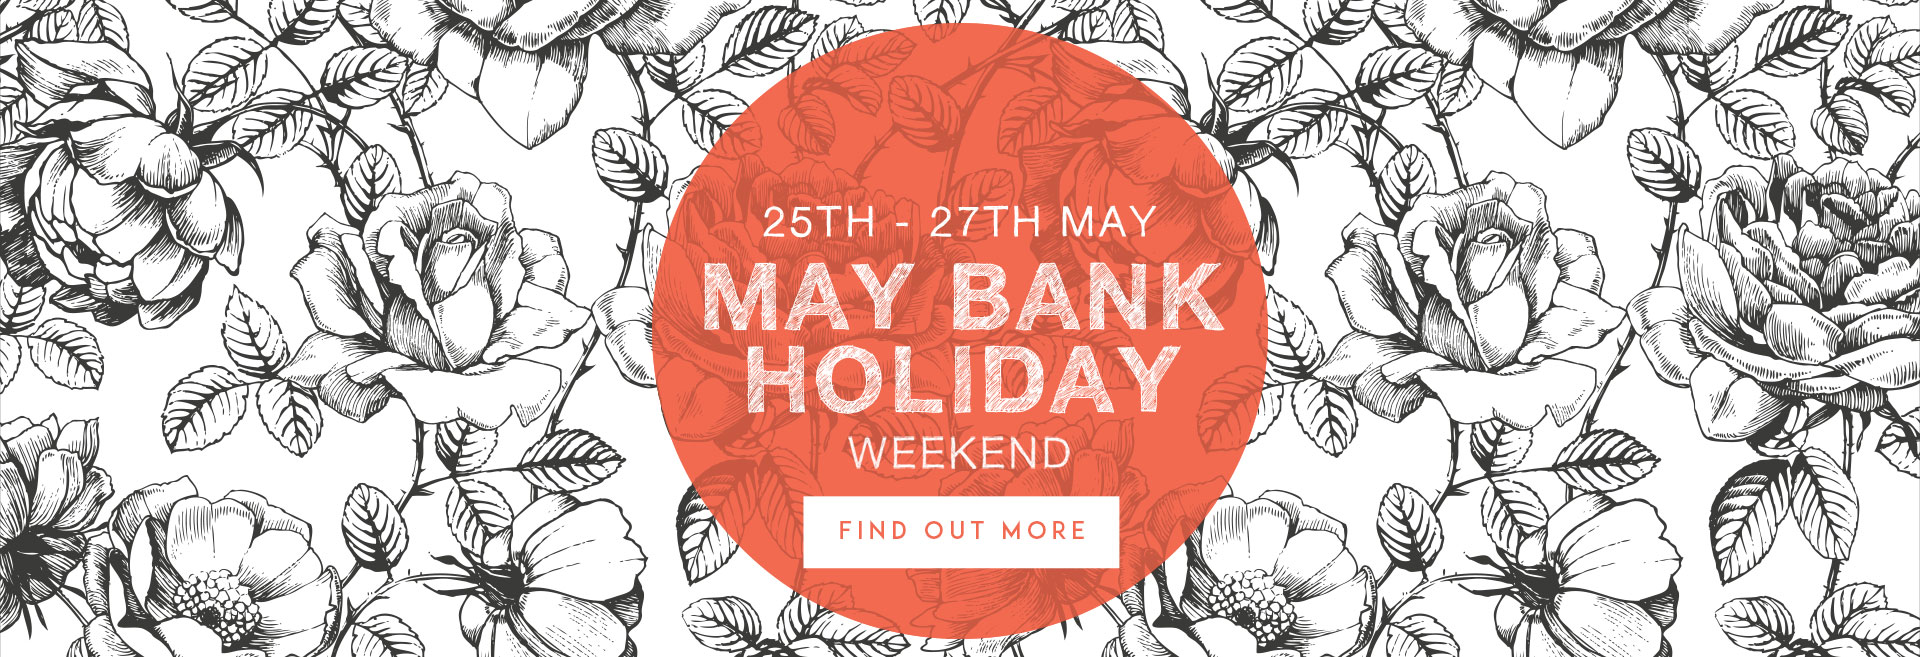 May Bank Holiday at The Ranelagh